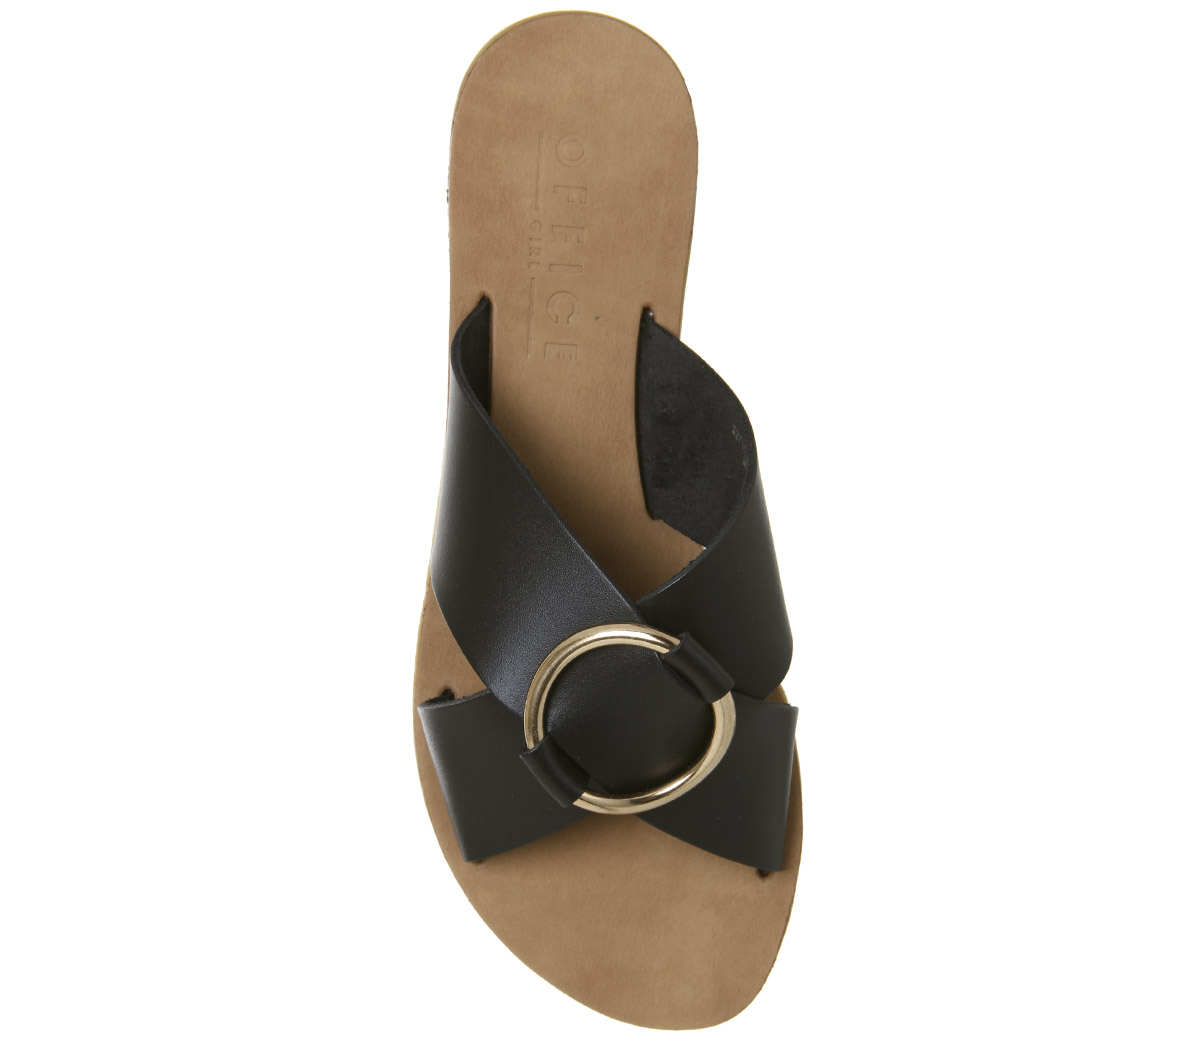 Womens Office Spirit Ring Detail Mule Sandals Black Leather Gold Ring Sandals